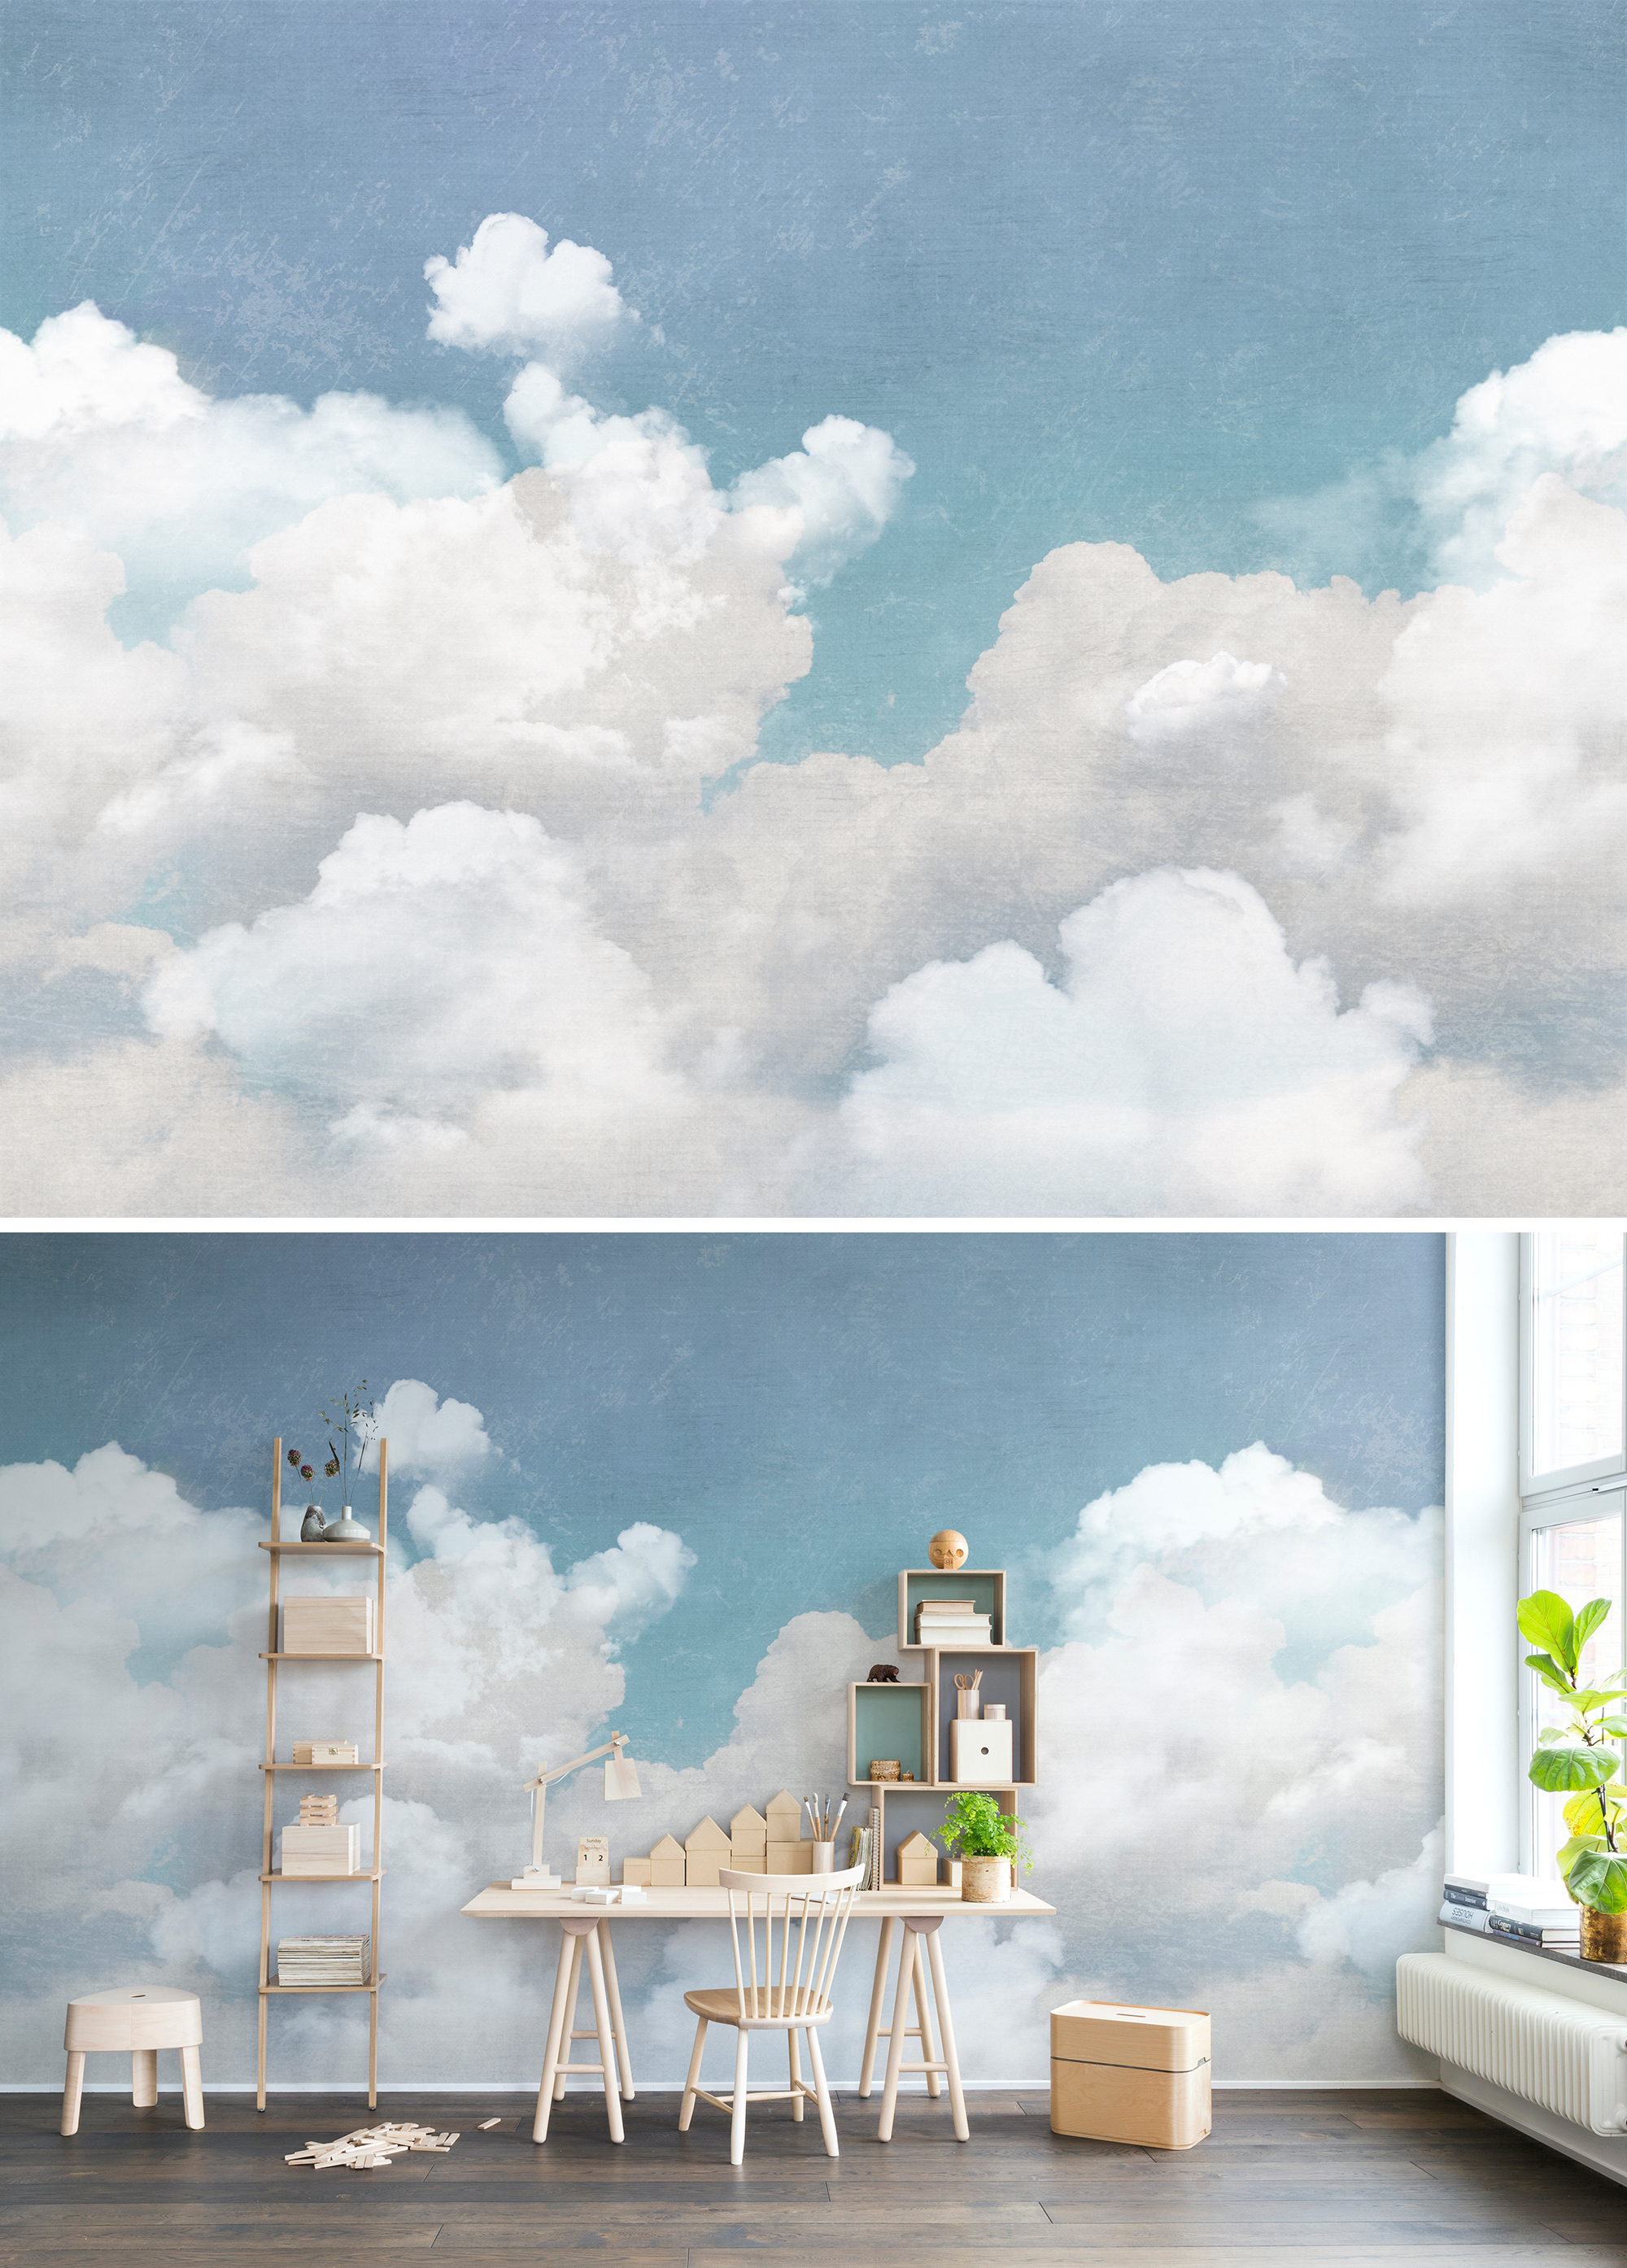 WALL-MURAL-BLUE-TURQUOISE-DREAM-SKY-CLOUDS-FLUFFY-ART-CHILDREN-wallpaper-wp44012607